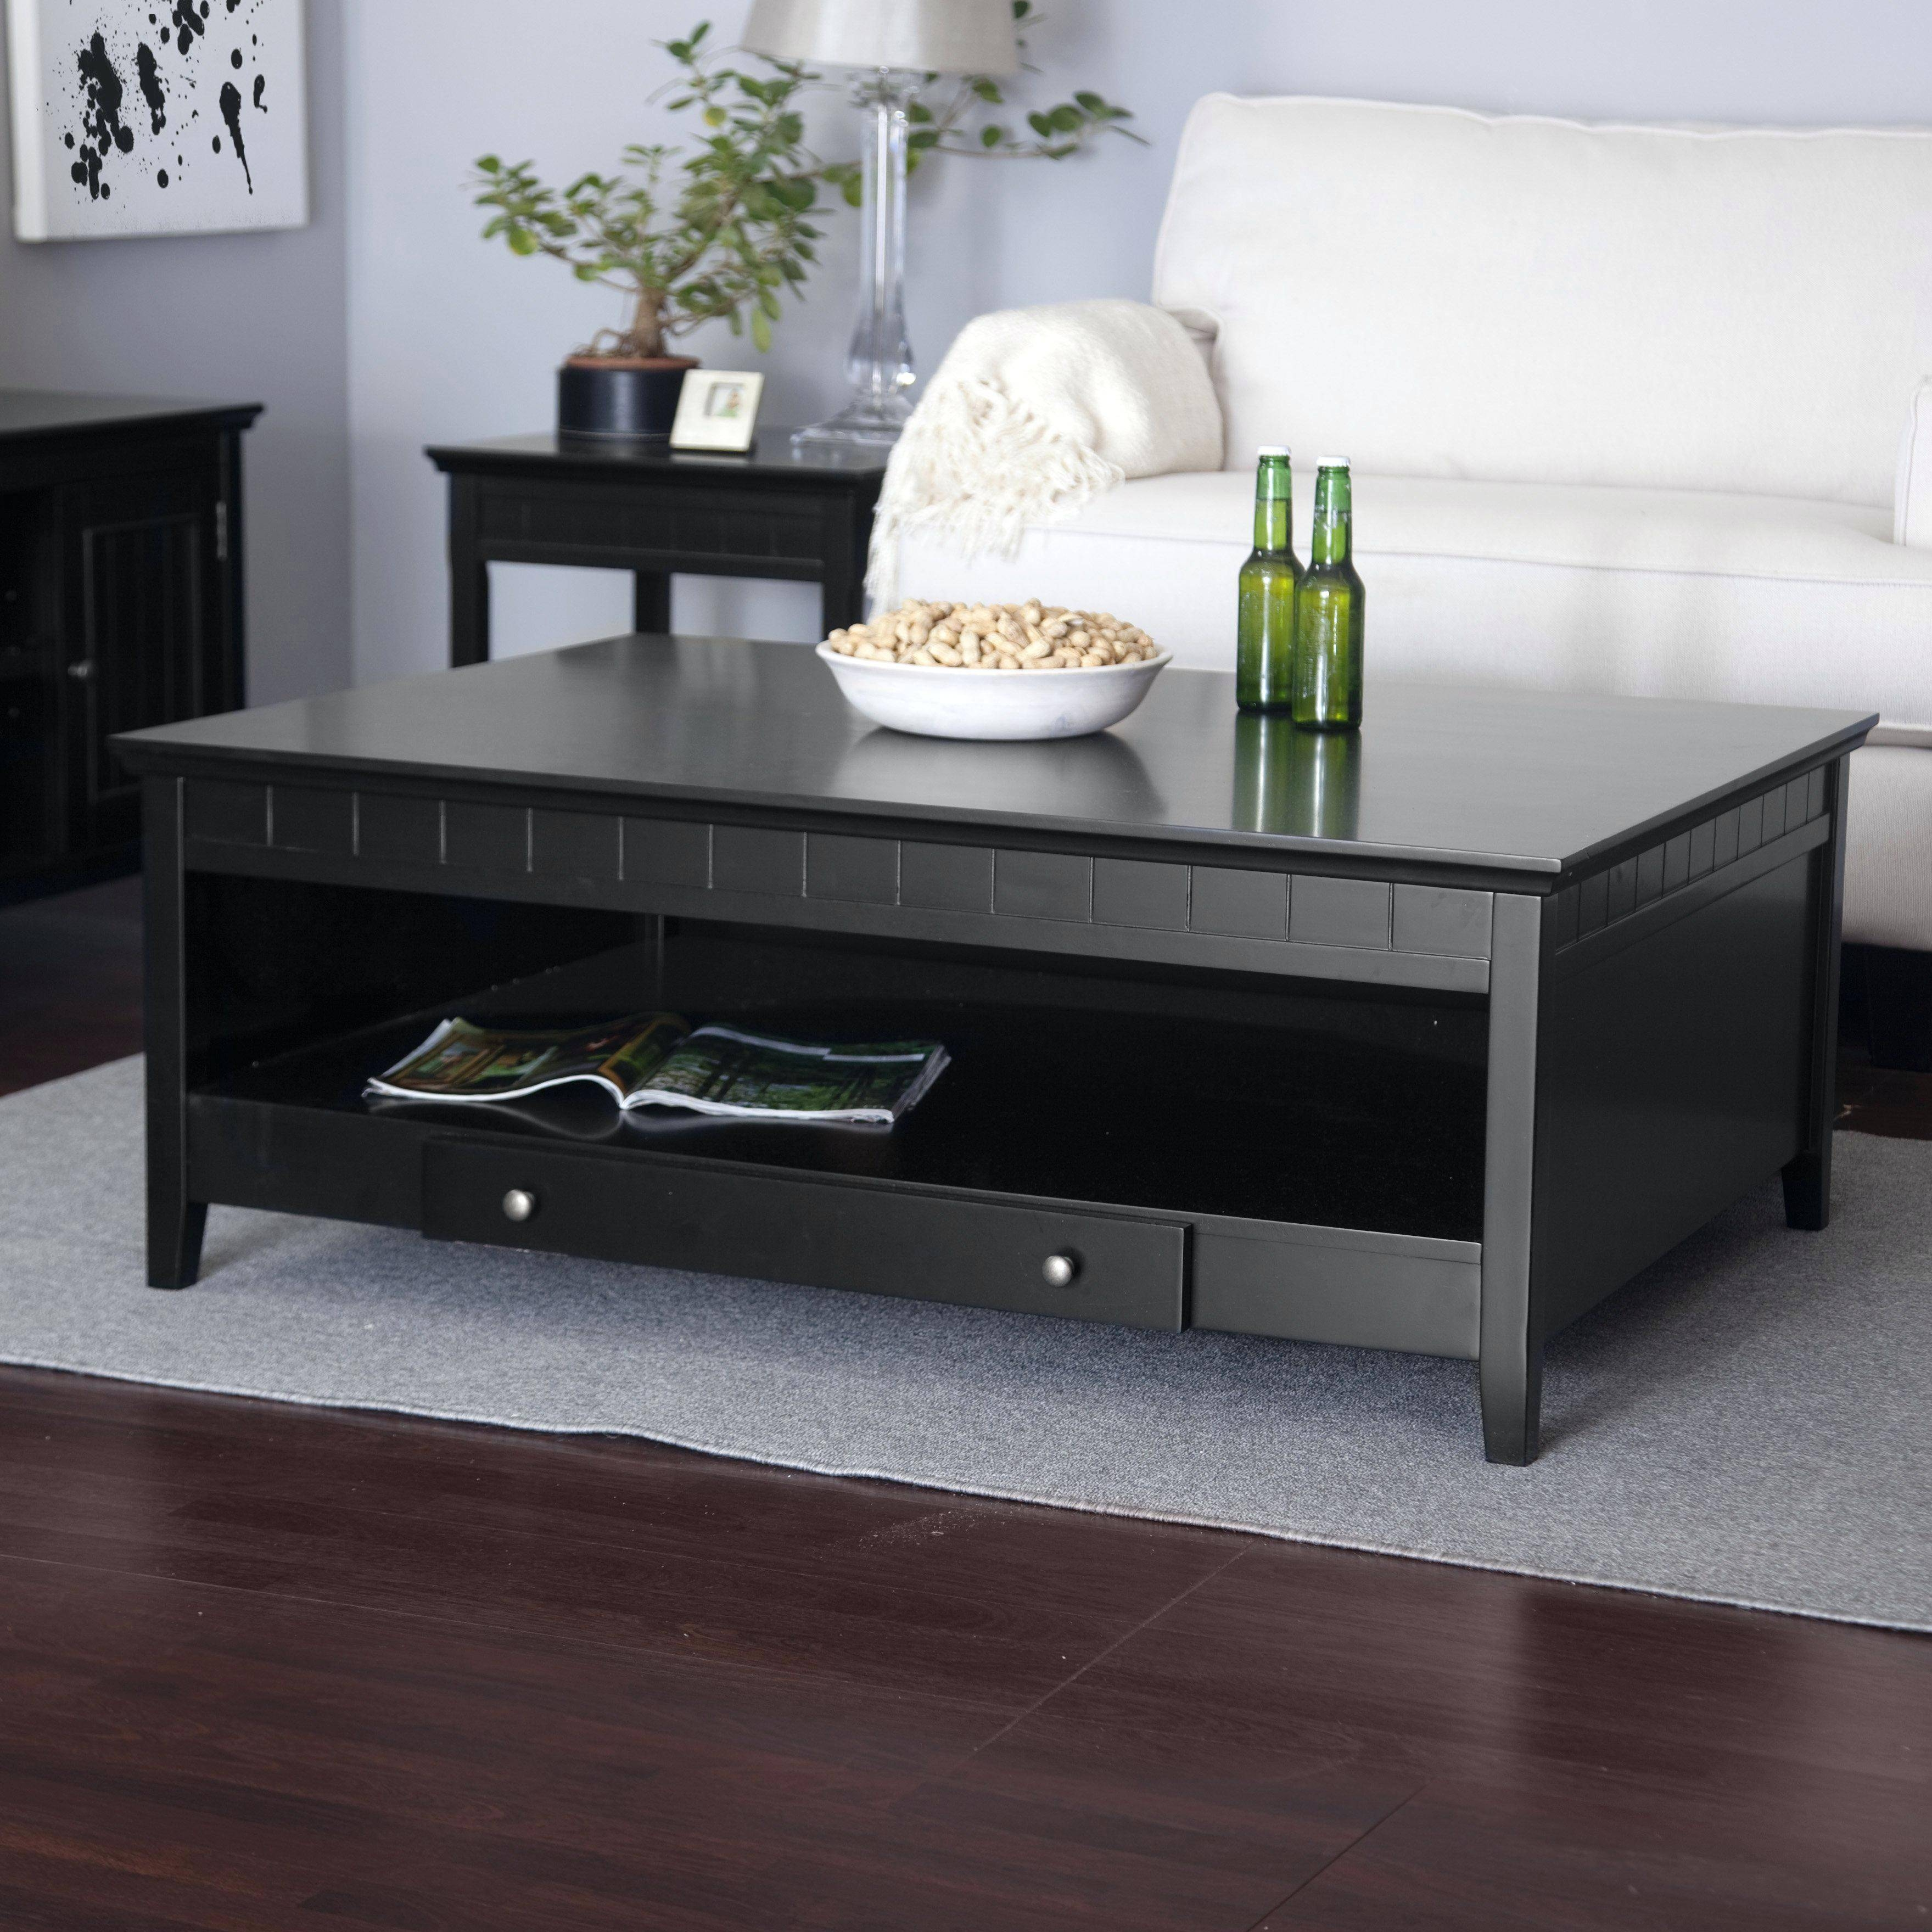 Coffee Table: Square Coffee Table Storage Large Round Coffee inside Round Coffee Table Storages (Image 9 of 30)